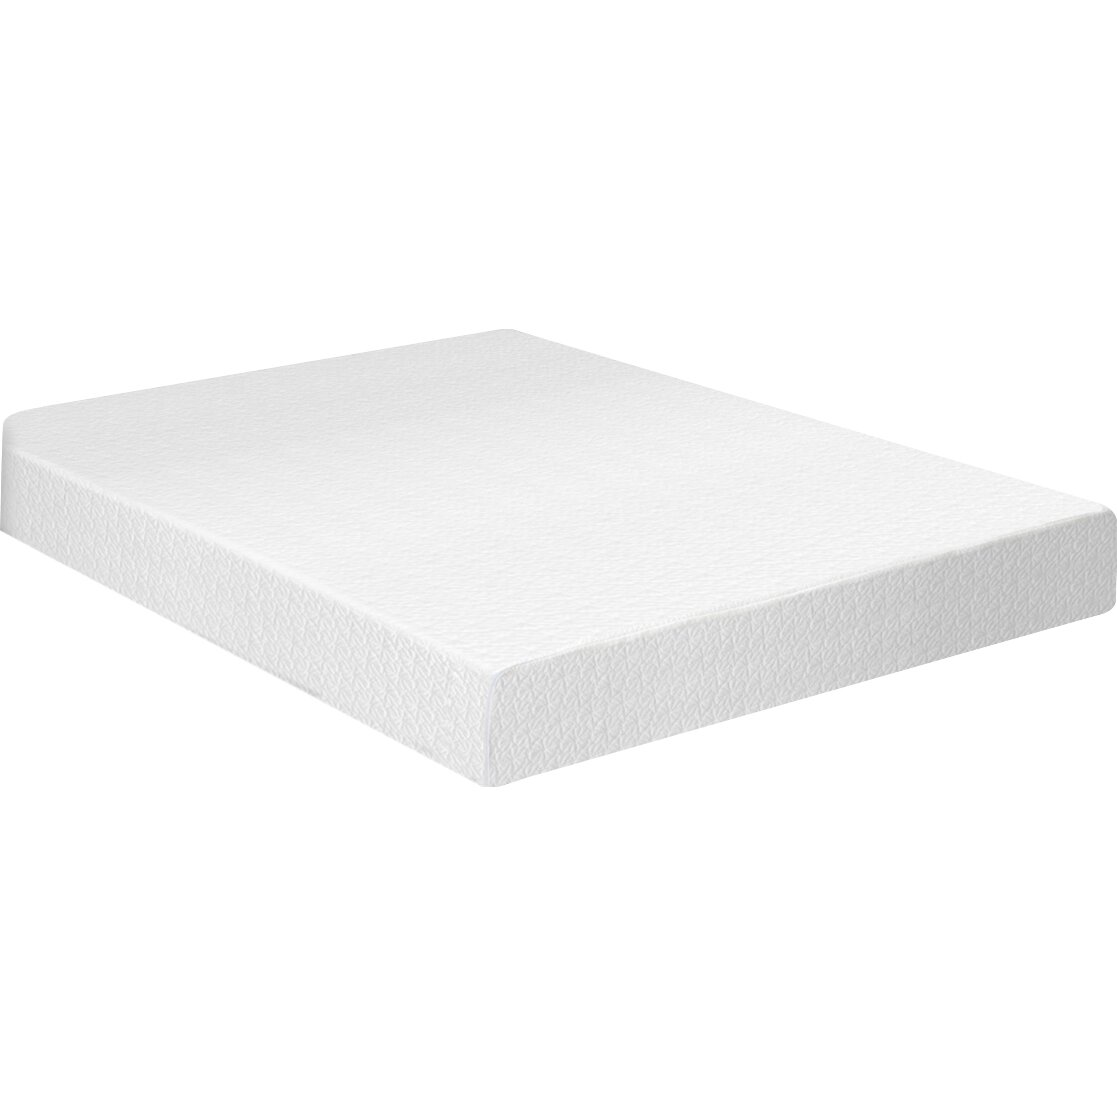 Best price quality best price quality 8 memory foam for Best foam mattress